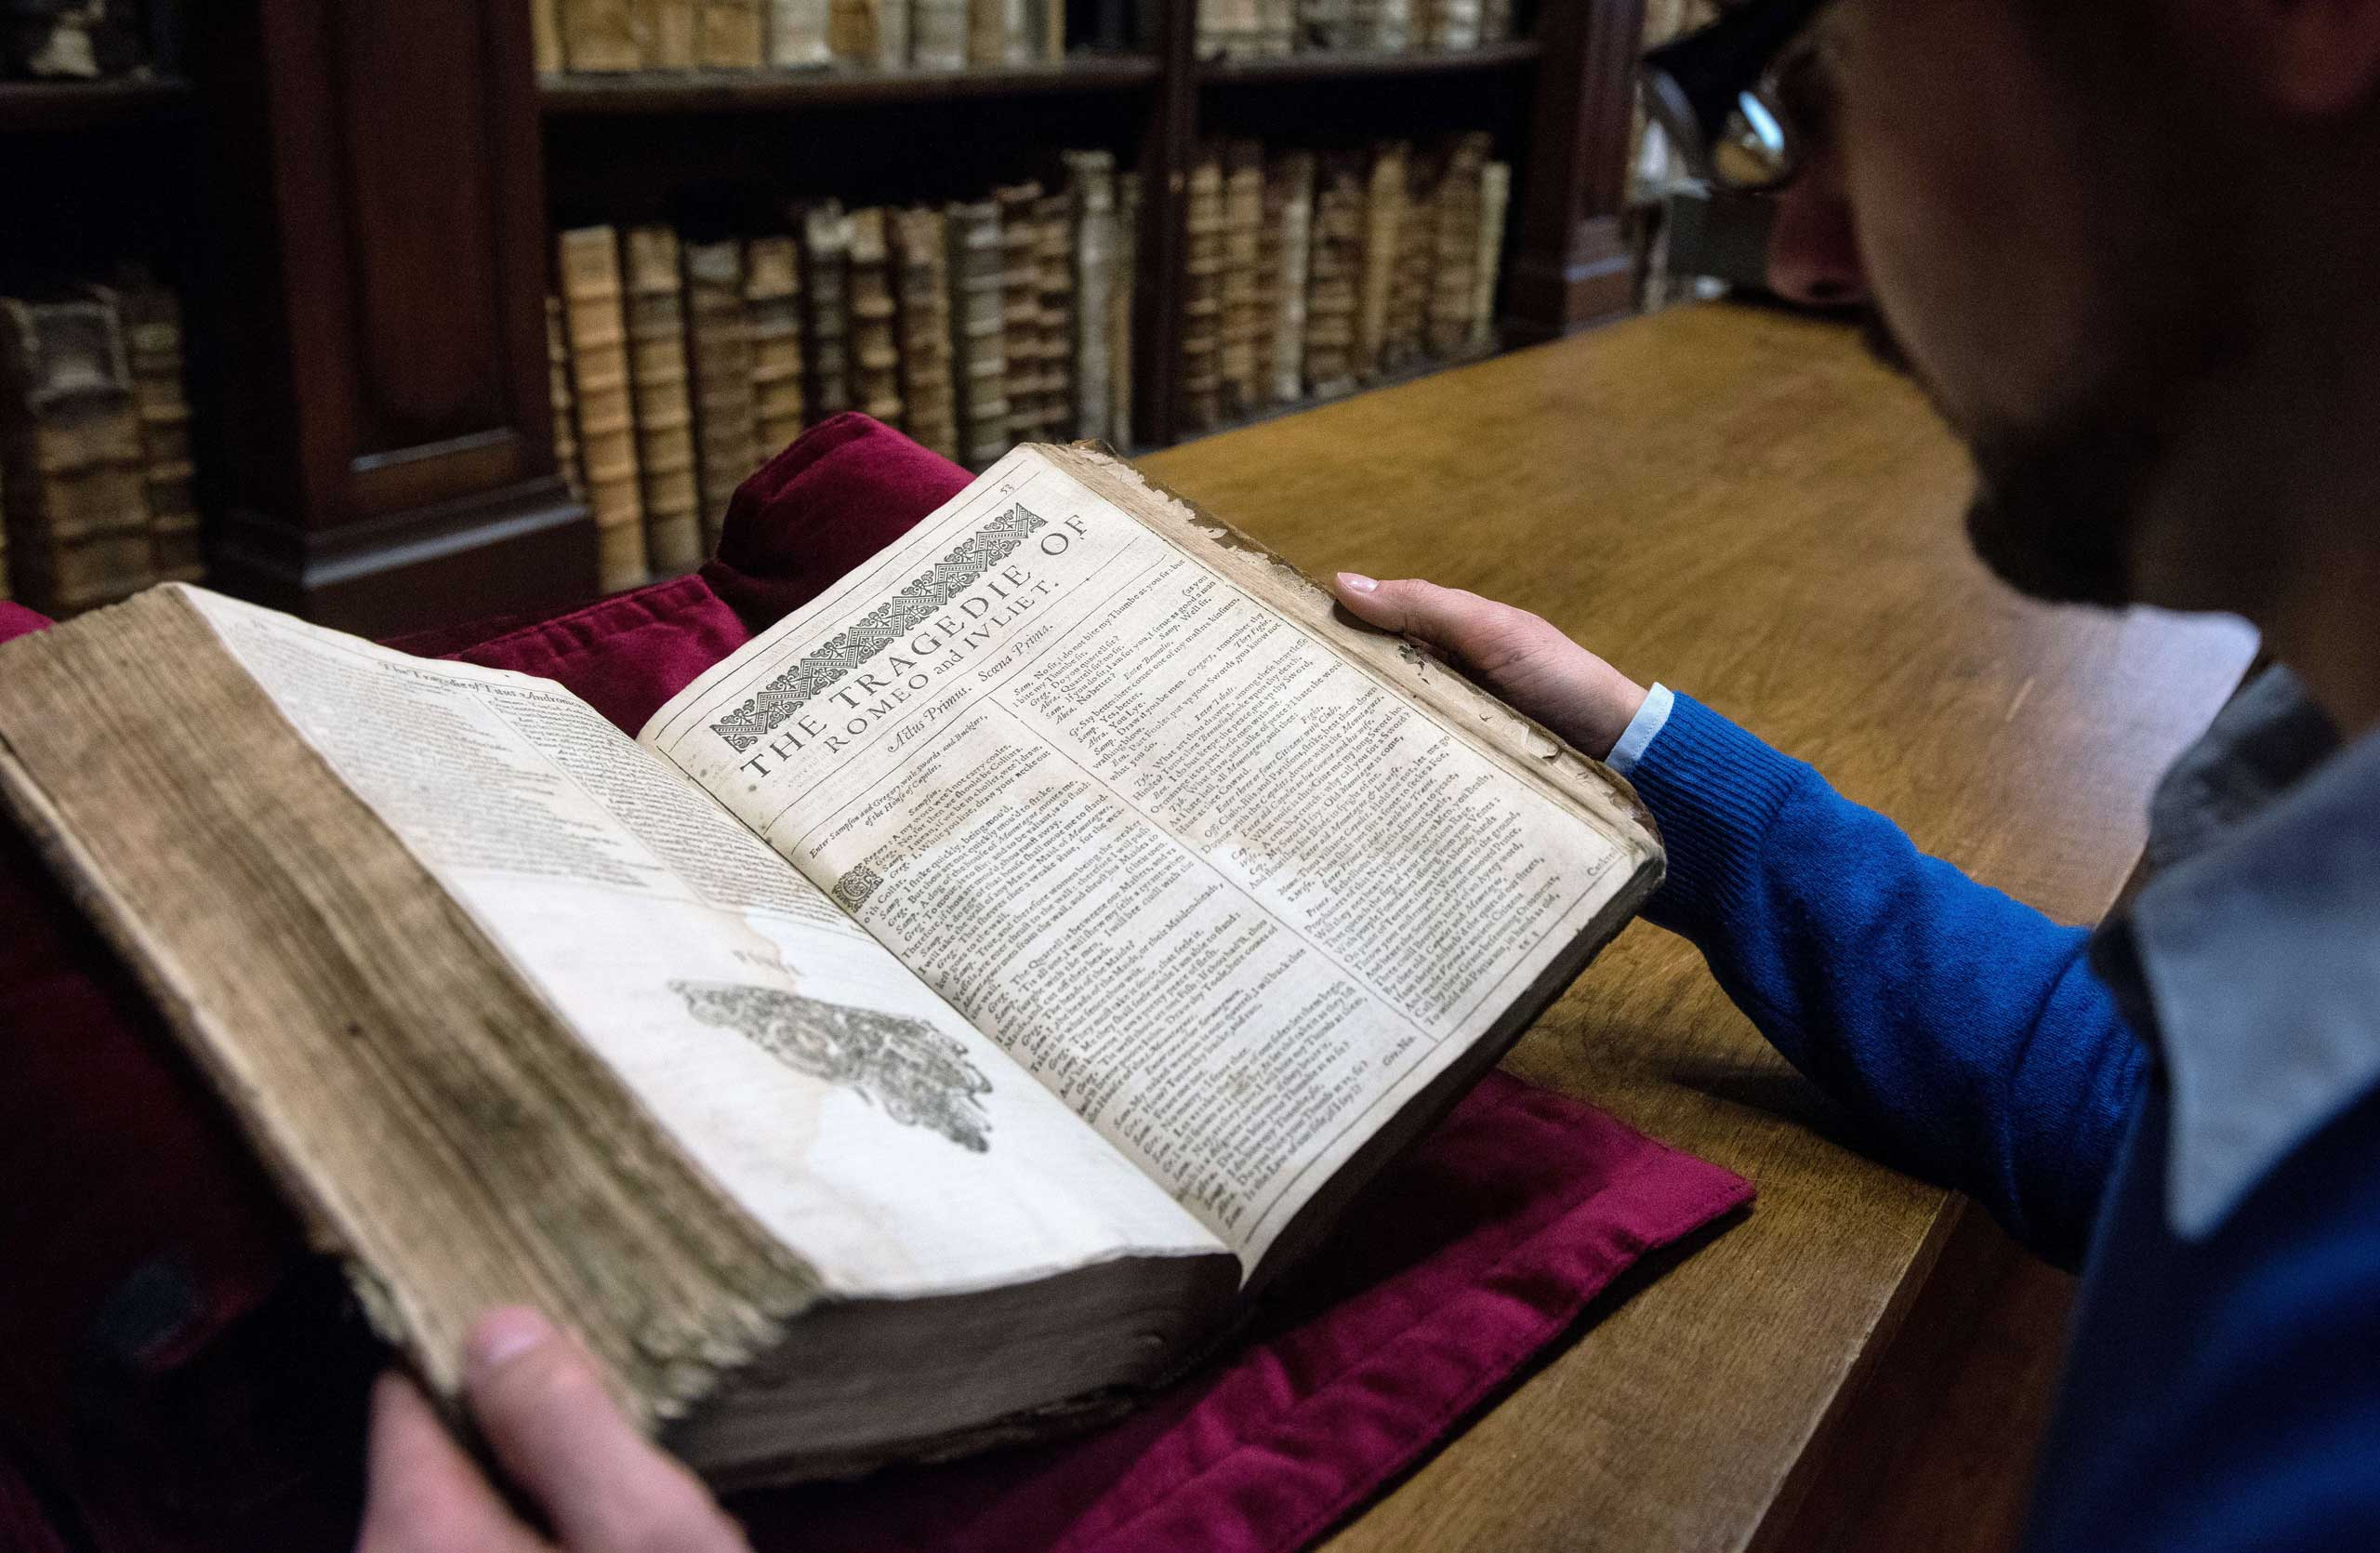 Remy Cordonnier, librarian in the northern town of Saint-Omer, near Calais carefully shows an example of a valuable Shakespeare  First Folio , a collection of some of his plays, dating from 1623.